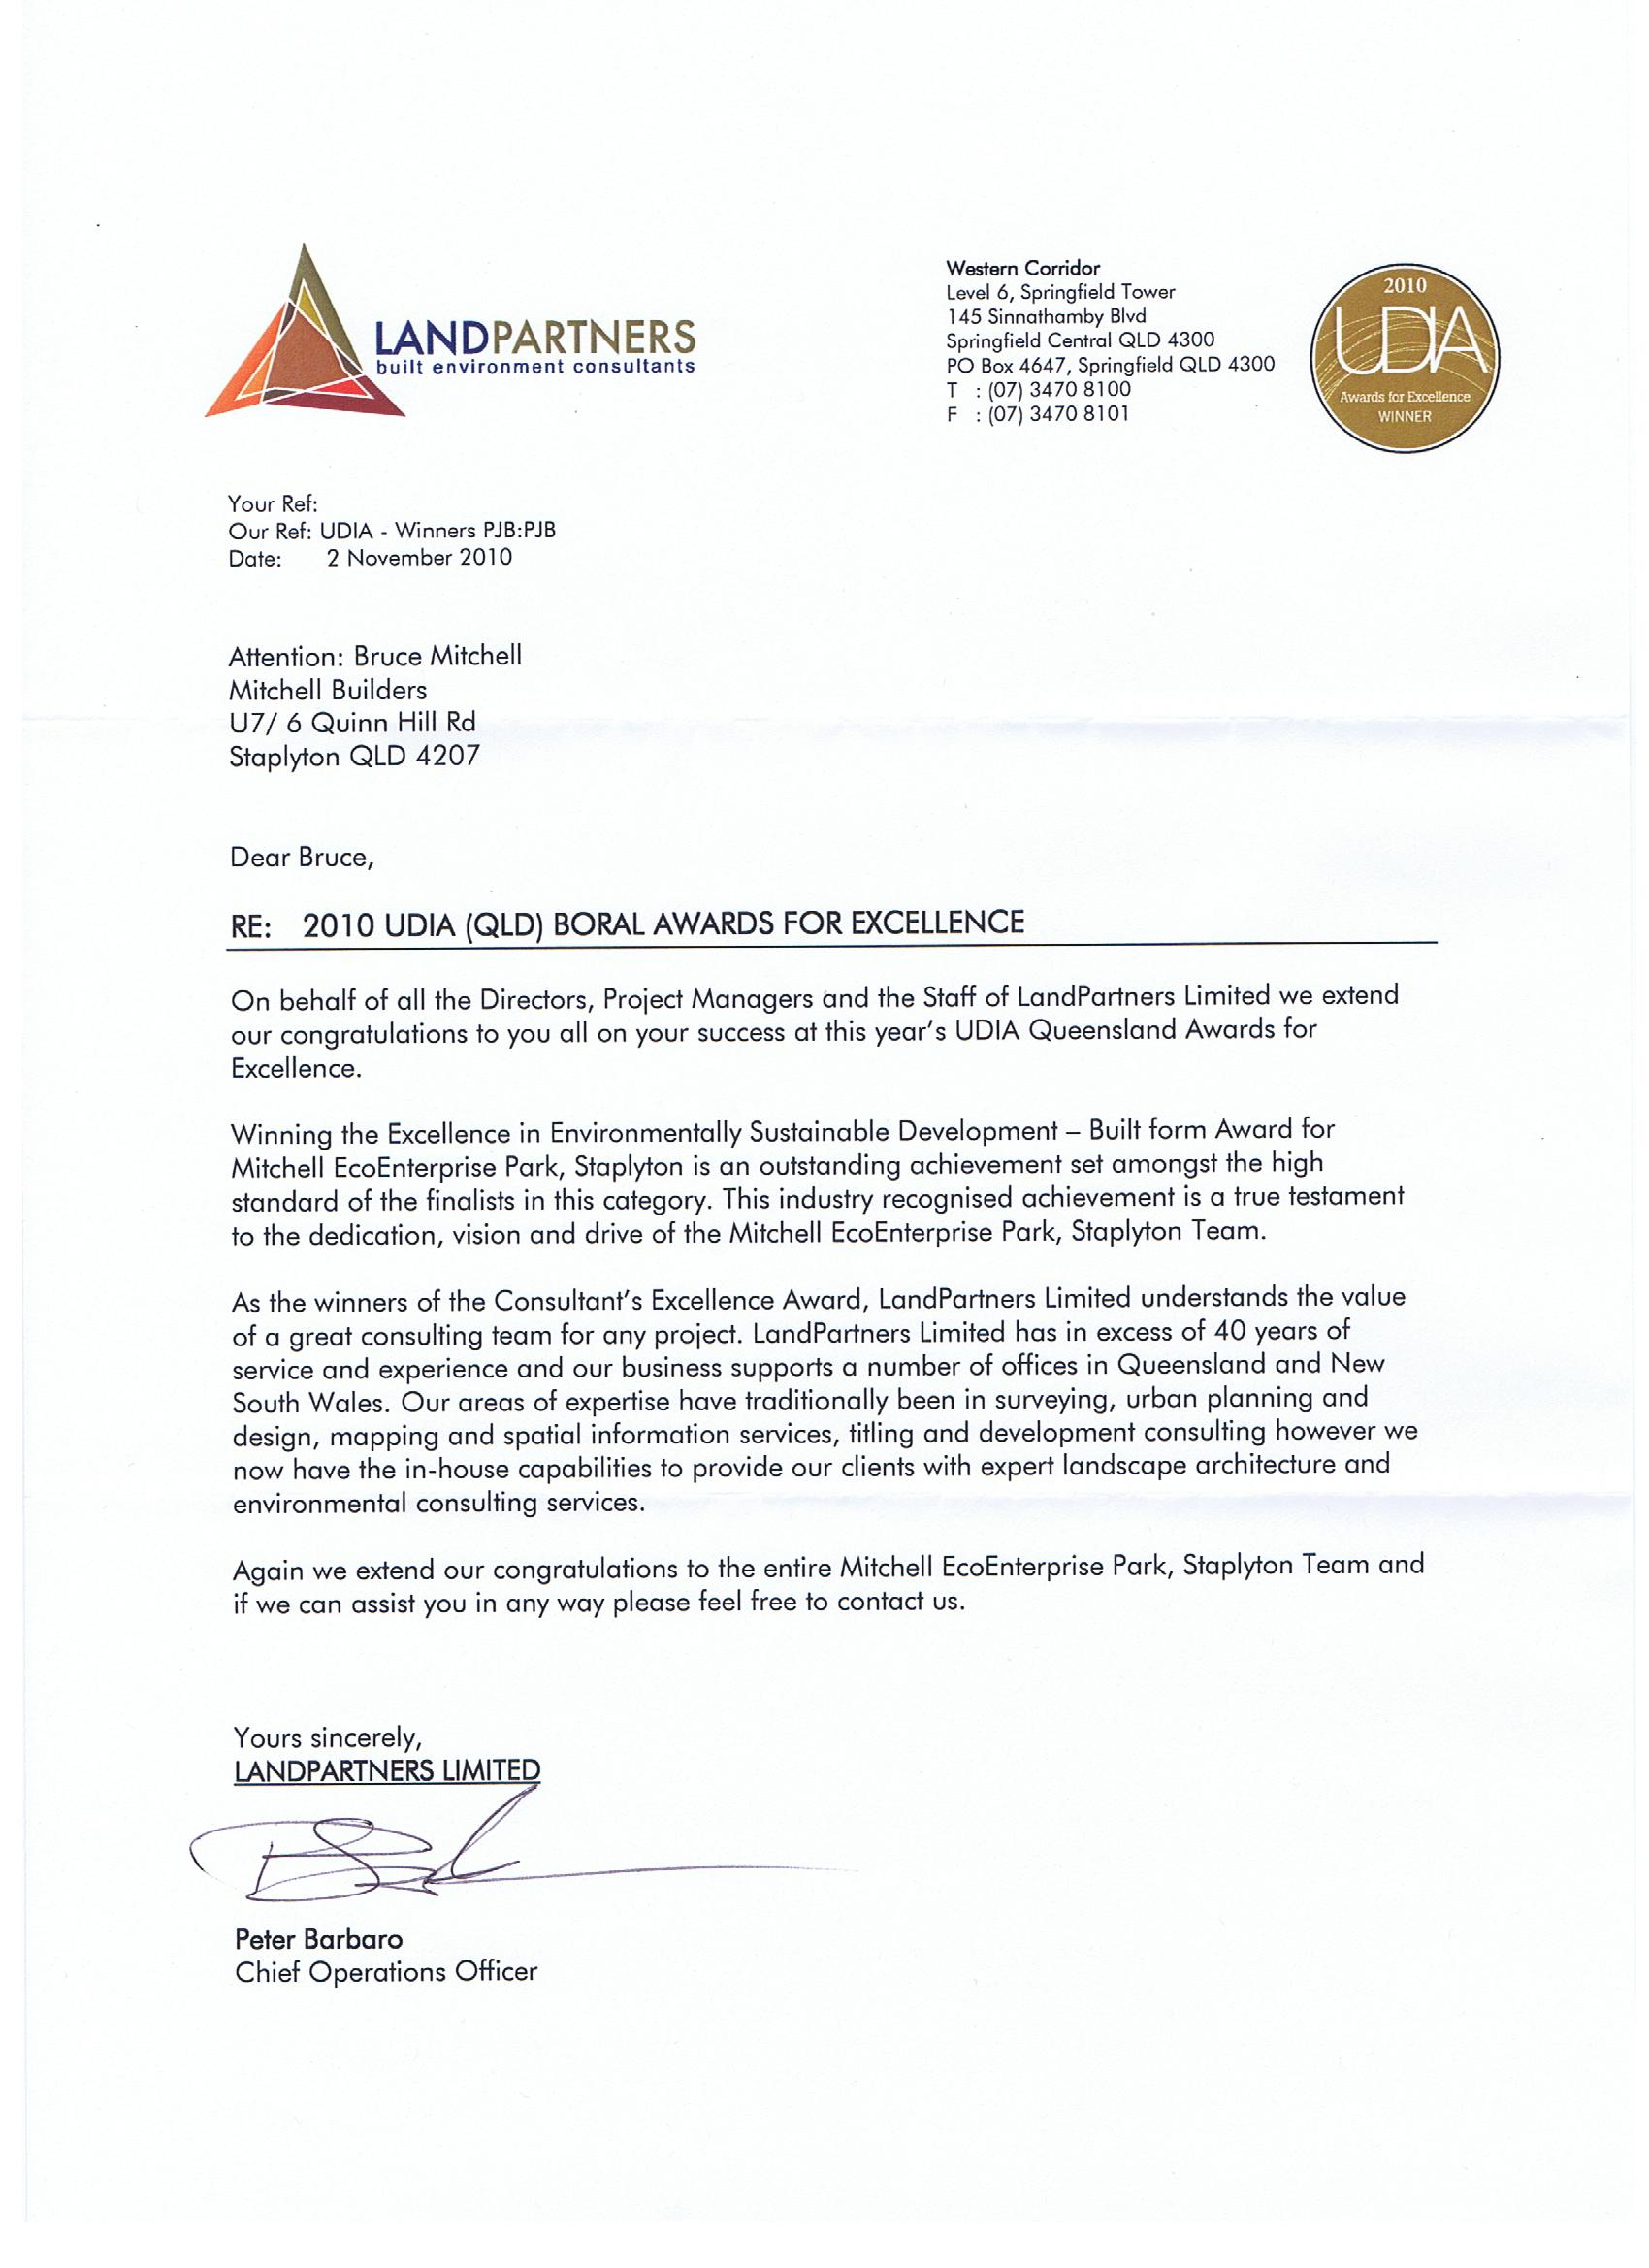 Land Partners congratulatory letter 001